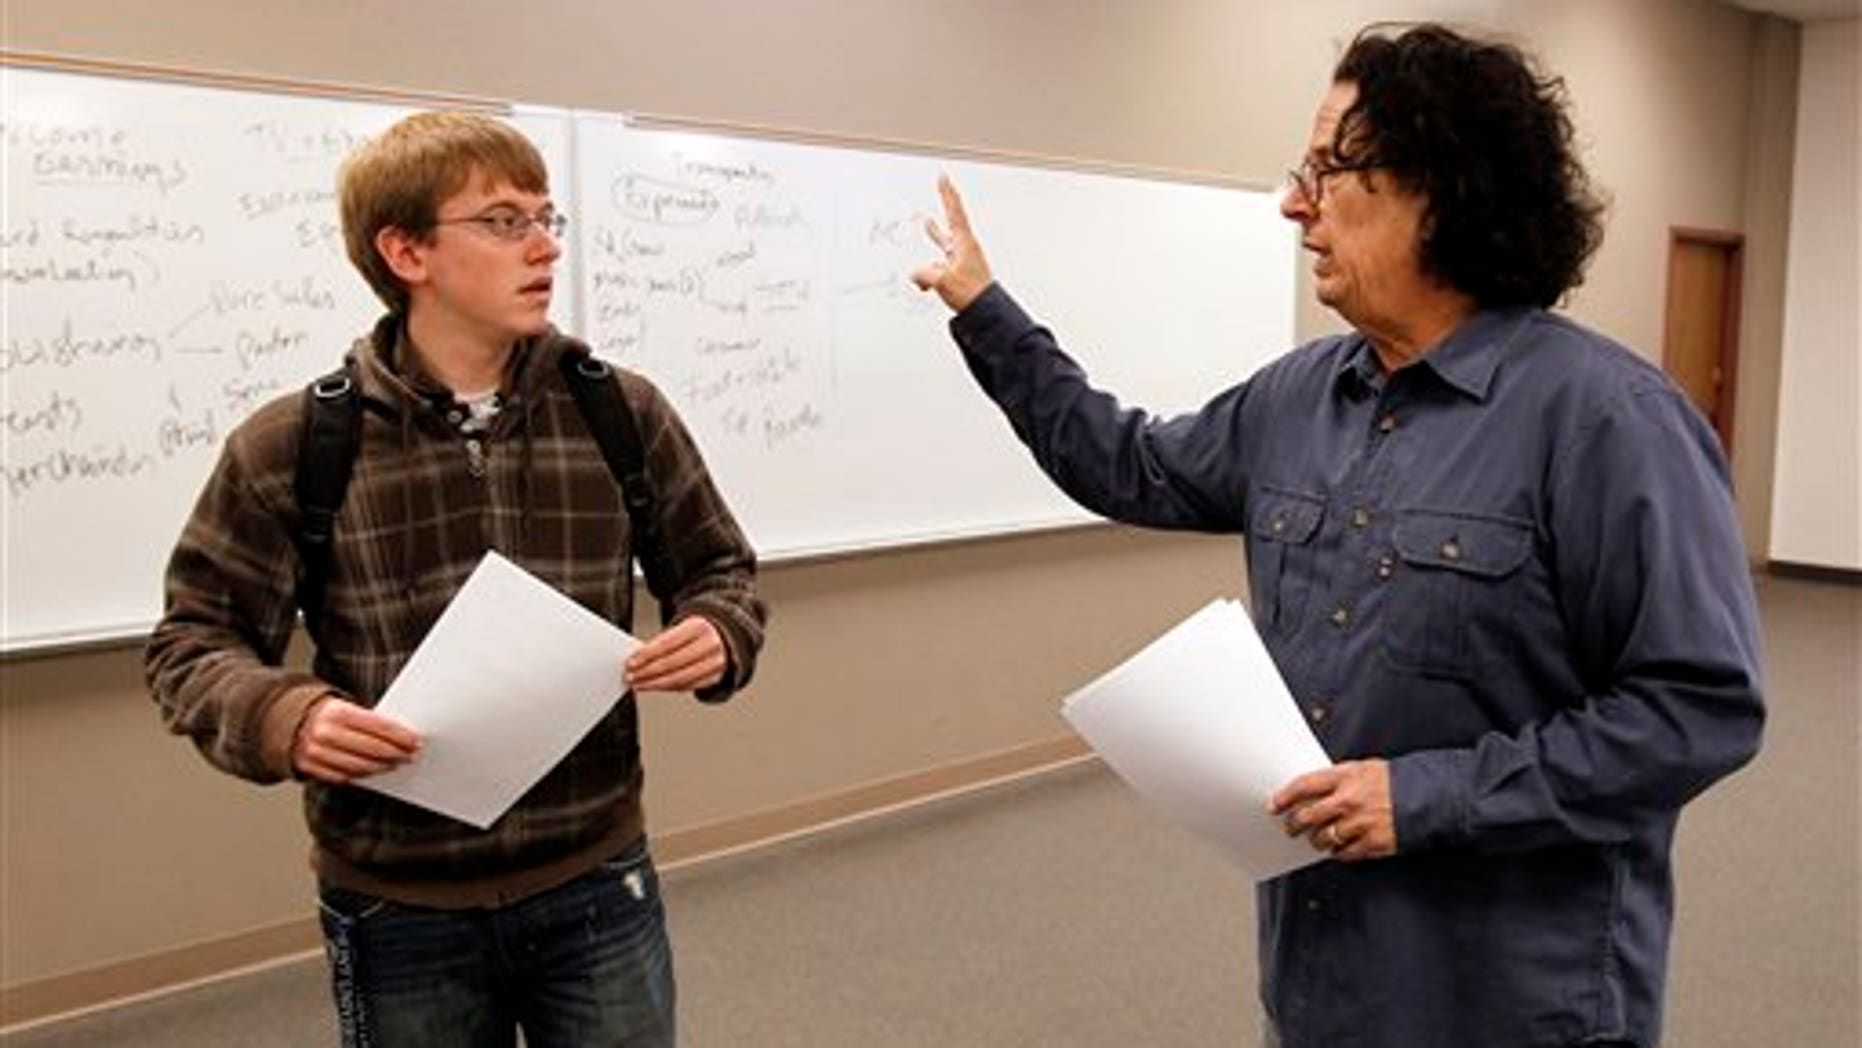 The Turtles' founder Mark Volman talks with a student at Belmont University. (AP)